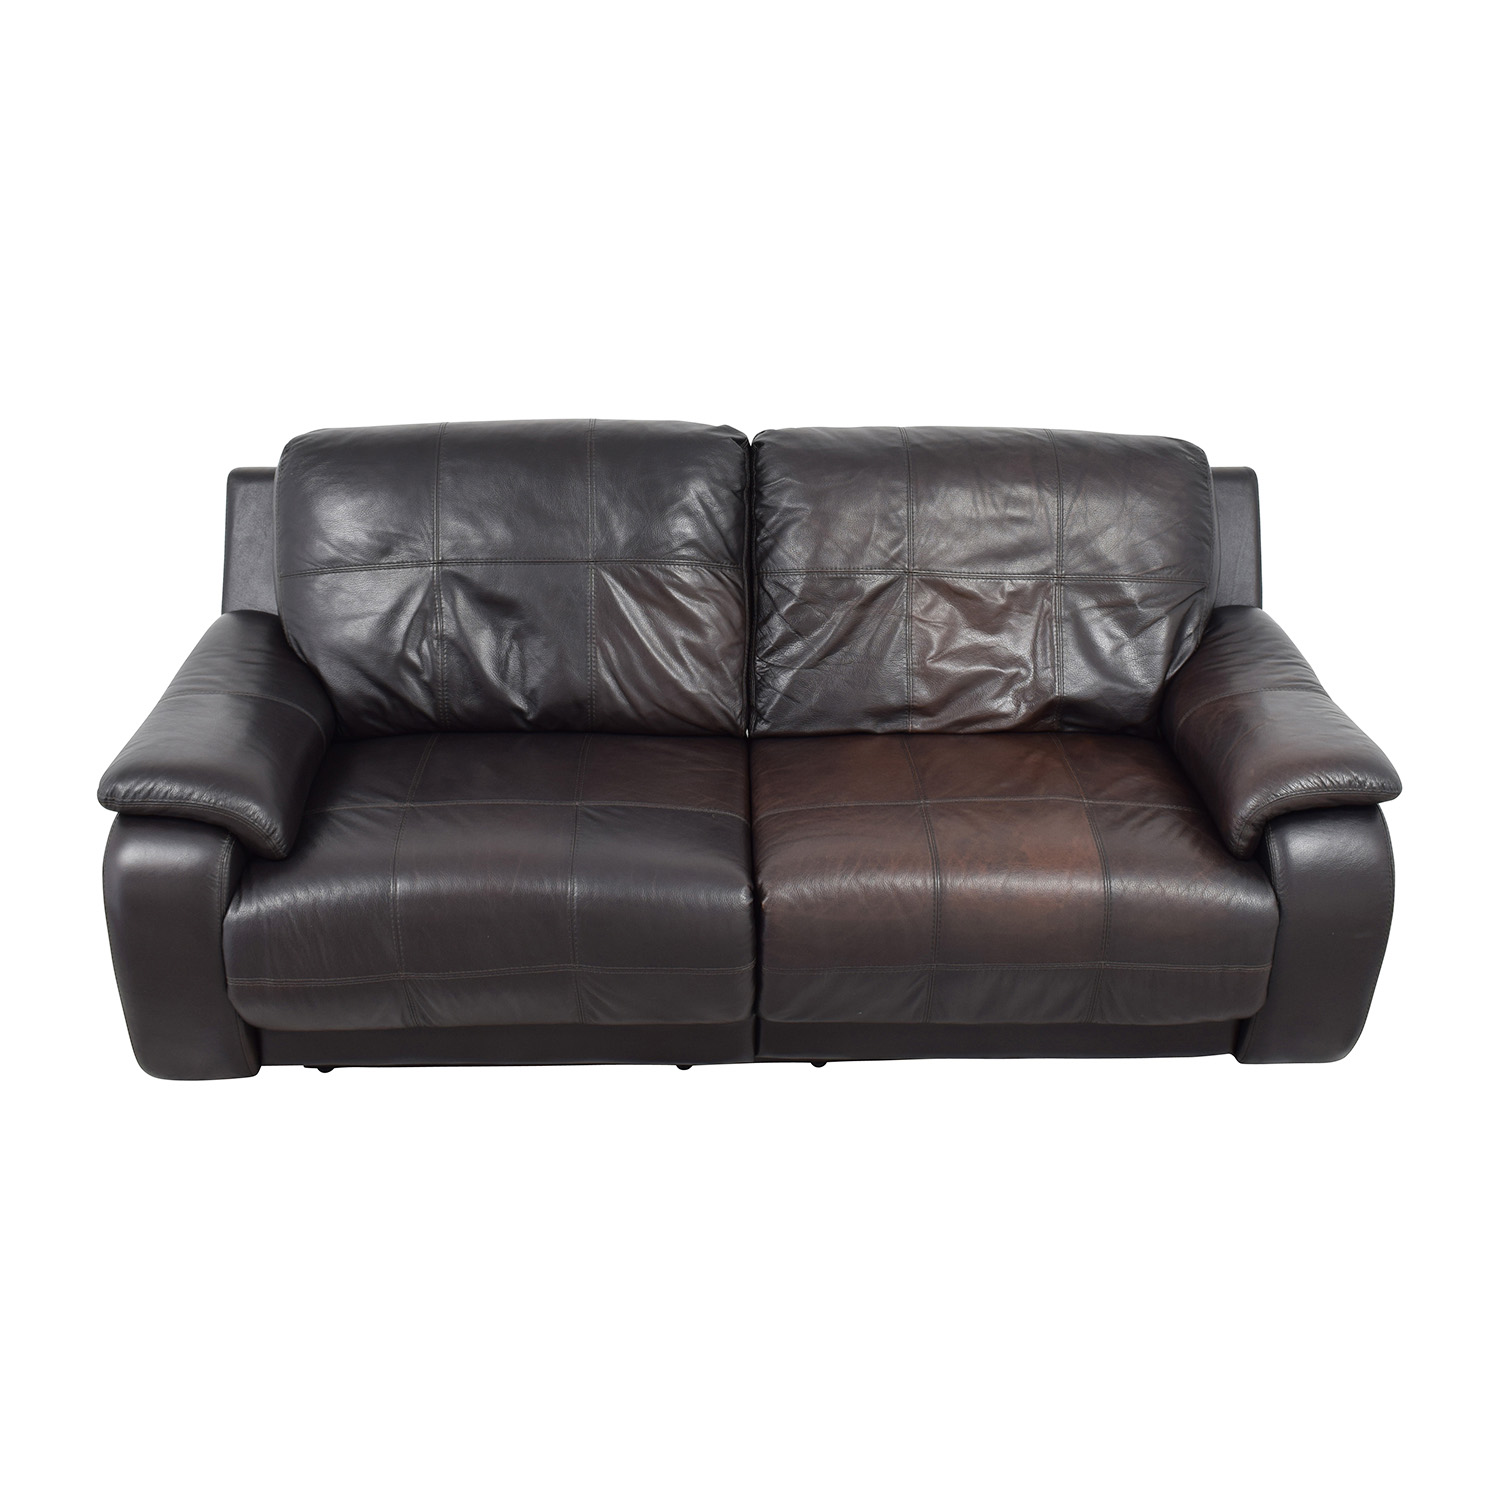 Perfect Raymour And Flanigan Raymour And Flanigan Espresso Leather Power Recliner  Sofa For Sale